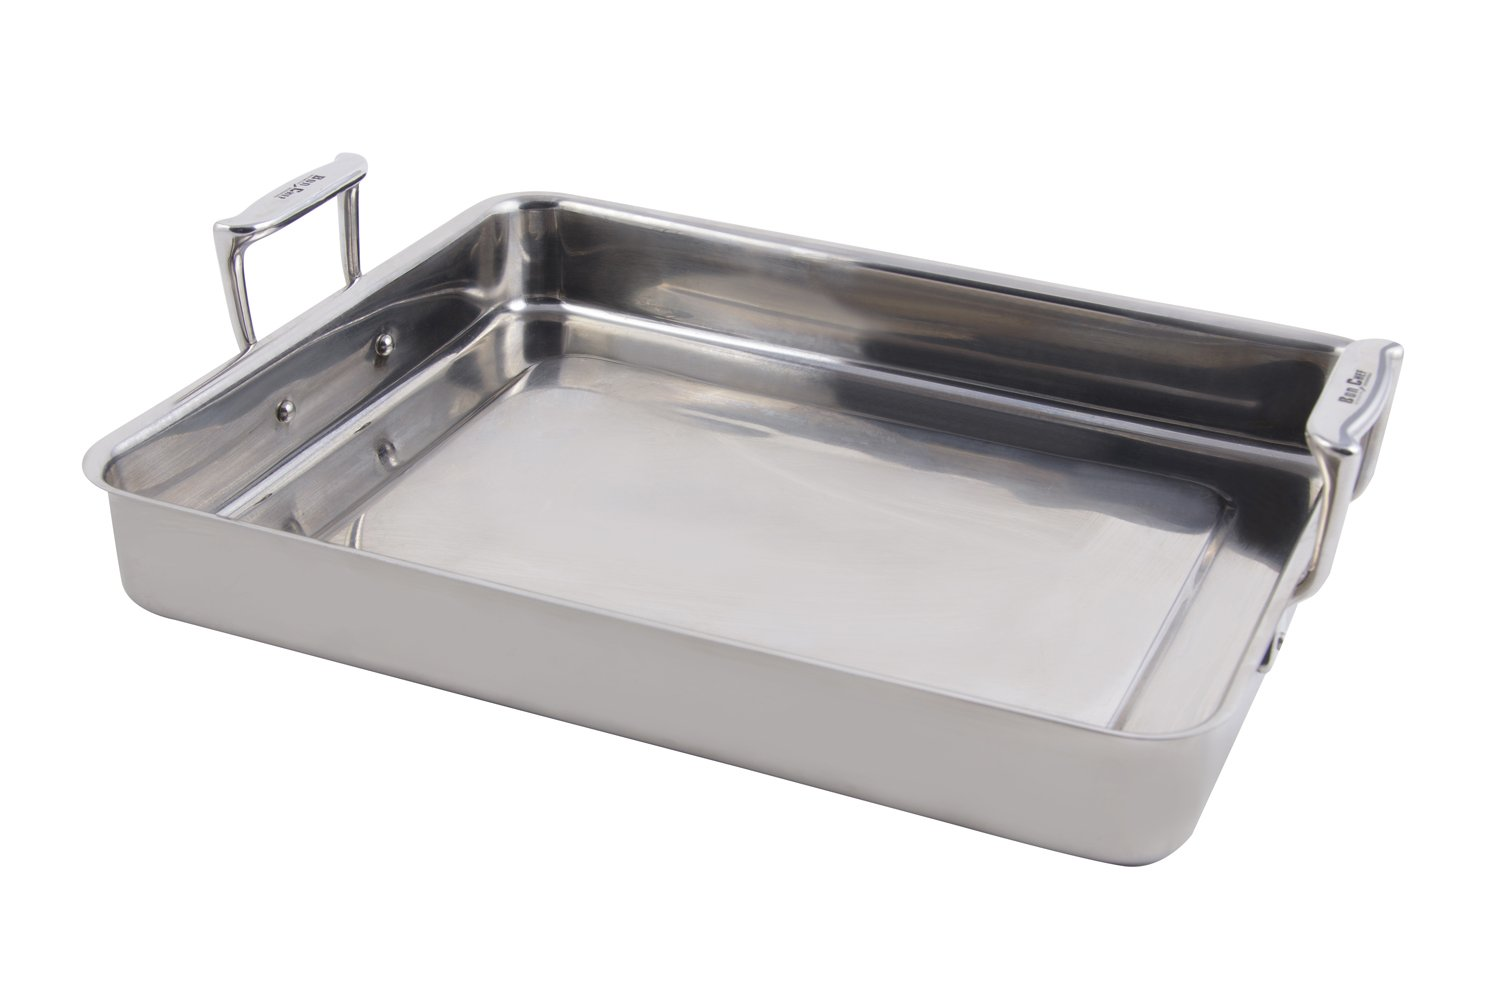 Bon Chef 60012 Stainless Steel Cucina Large Food Pan with Handles, 5 quart Capacity, 14-5/8'' Length x 11-7/8'' Width x 2-1/4'' Height by Bon Chef